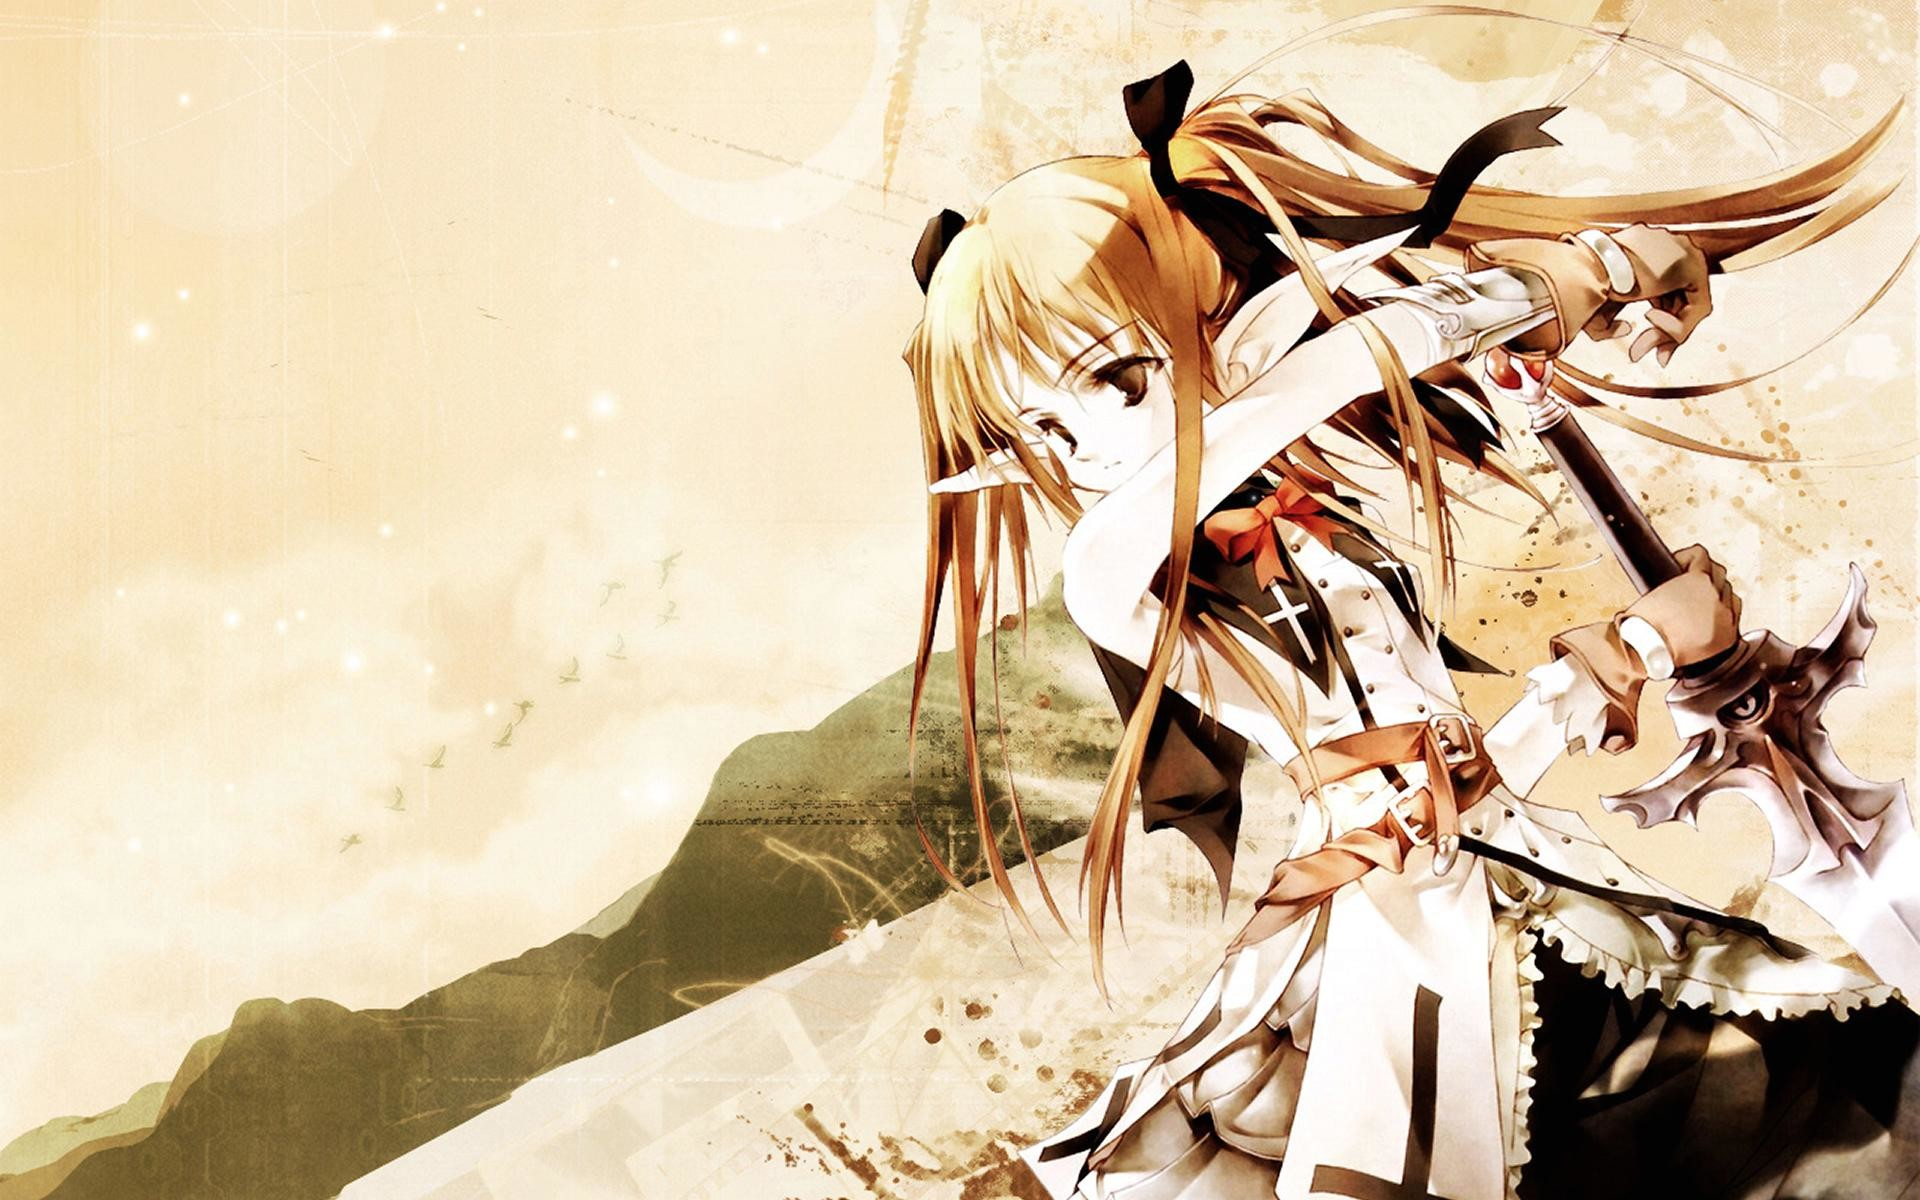 1920x1200 Japanese Anime Female Warrior | Wallpaper warrior girl anime